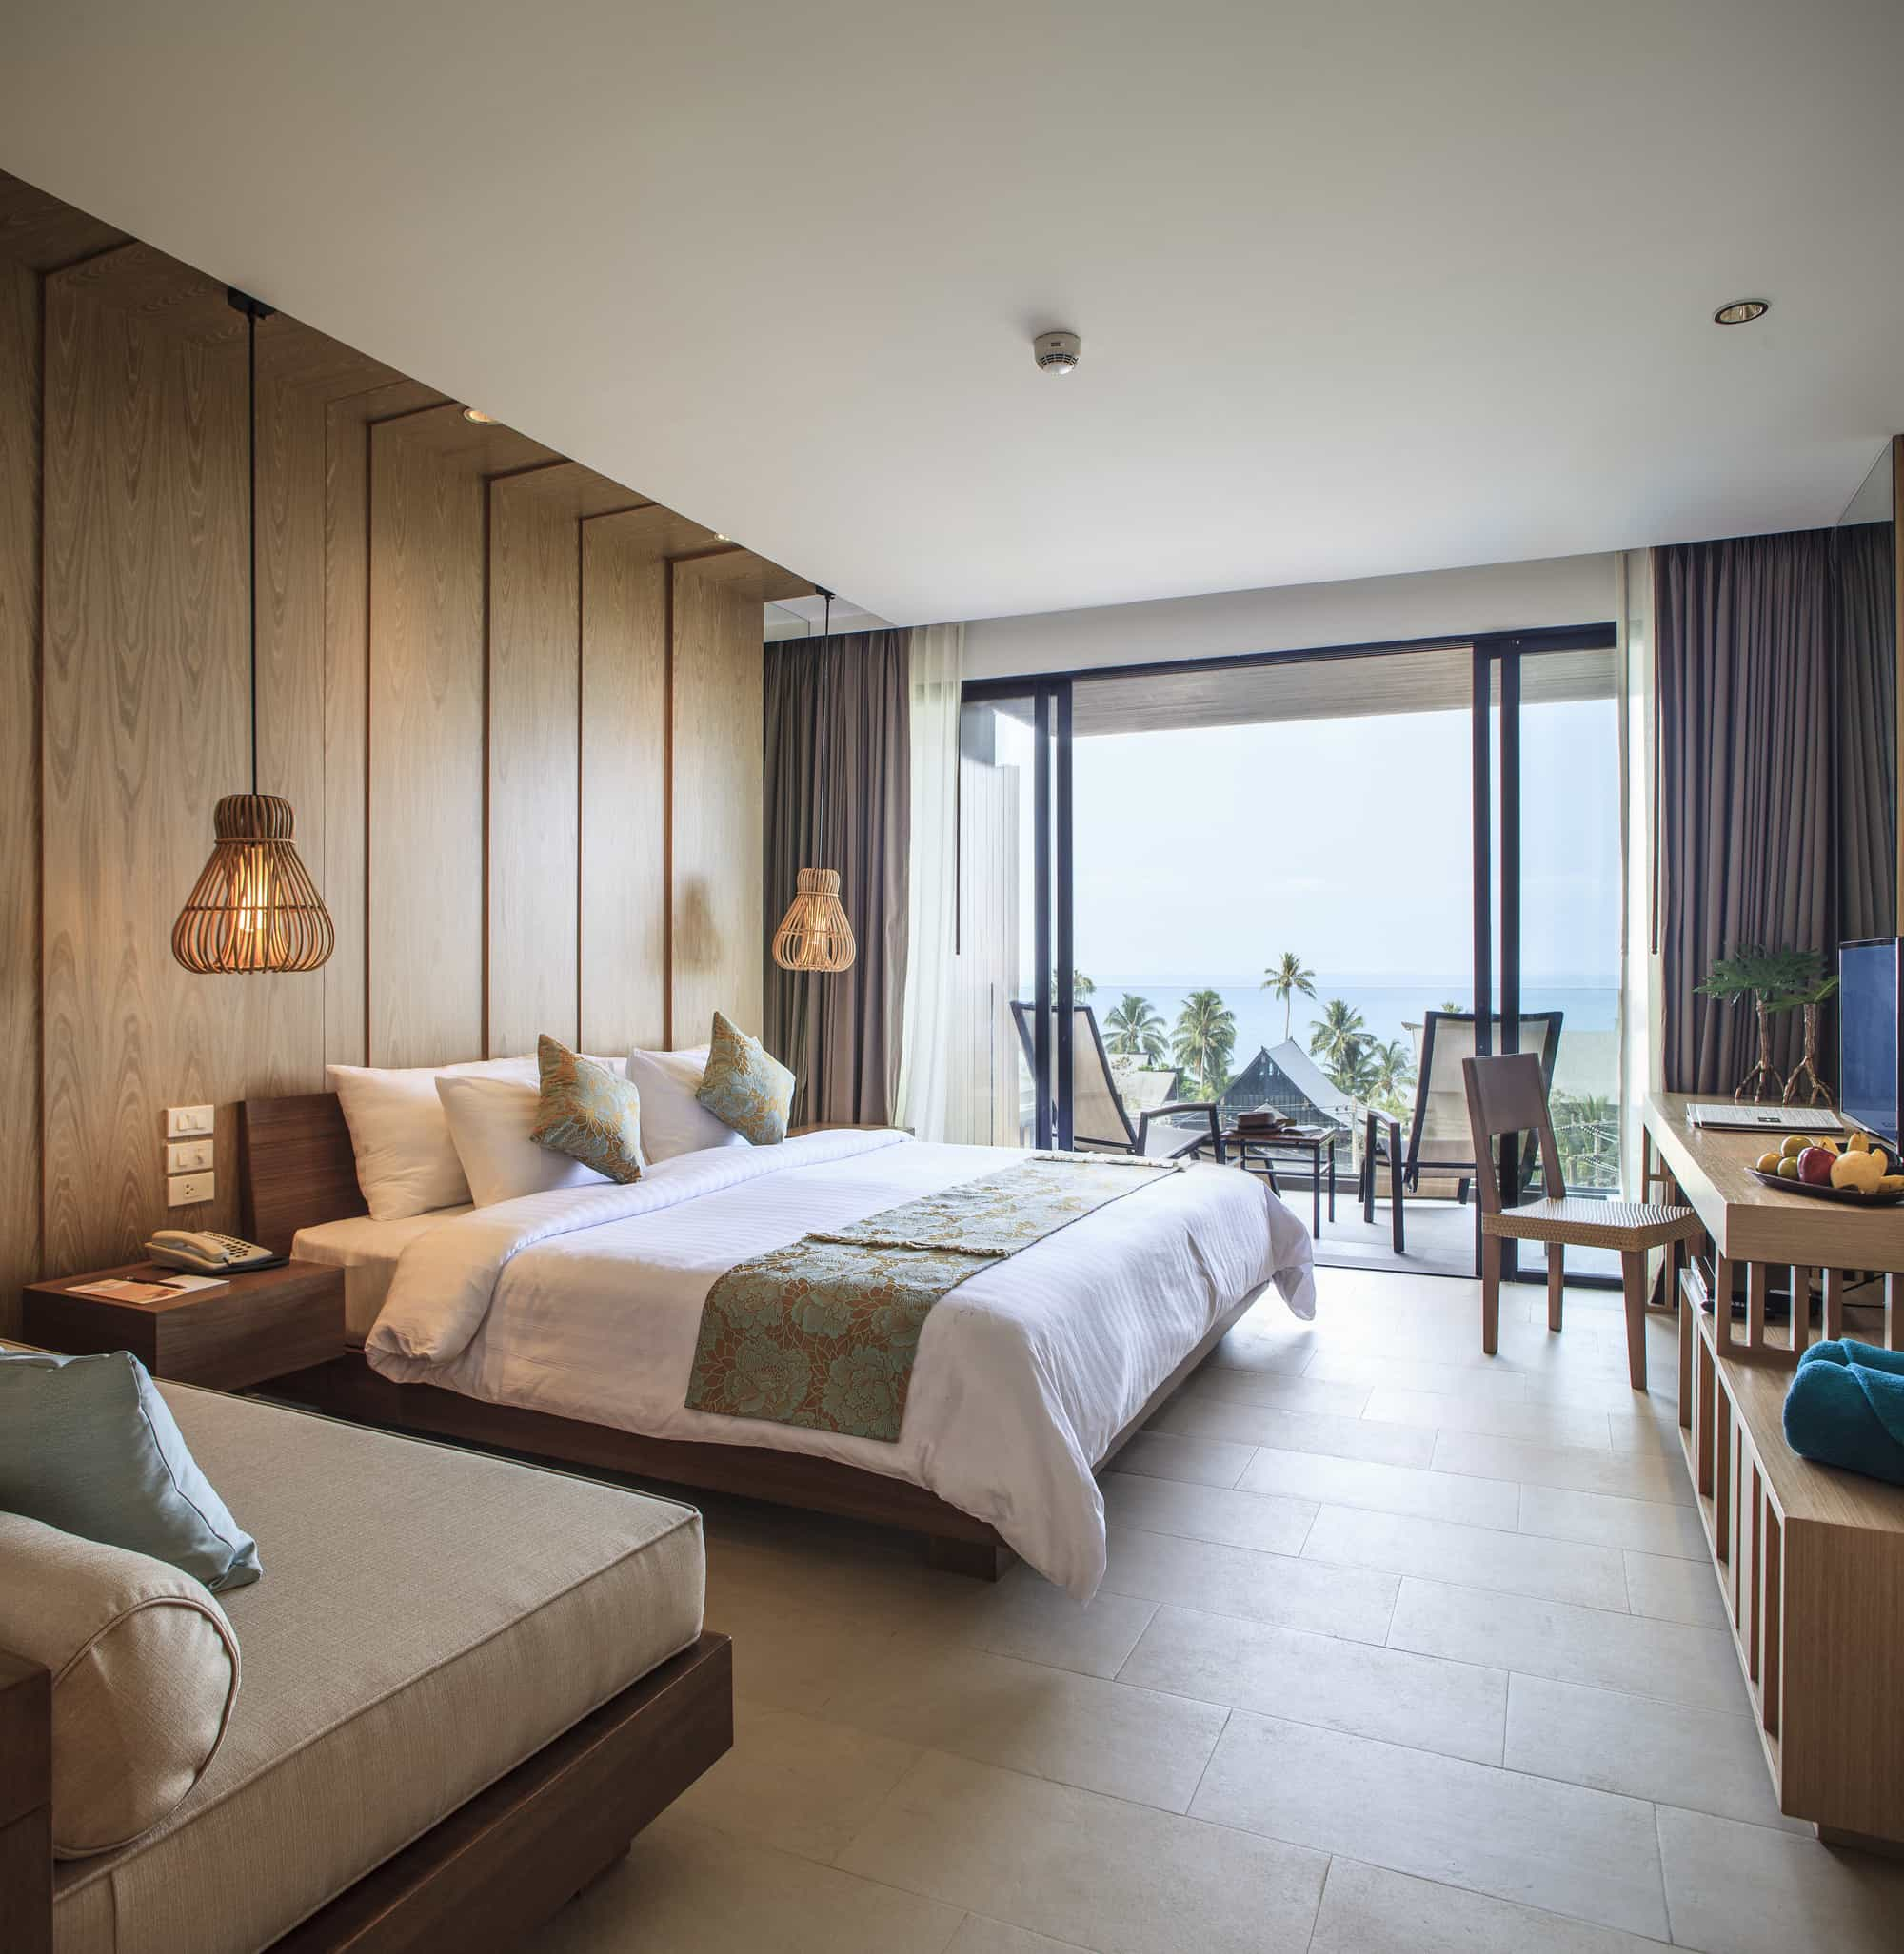 Hotel Room Design Ideas That Blend Aesthetics With ... on Photo Room Decor  id=35729